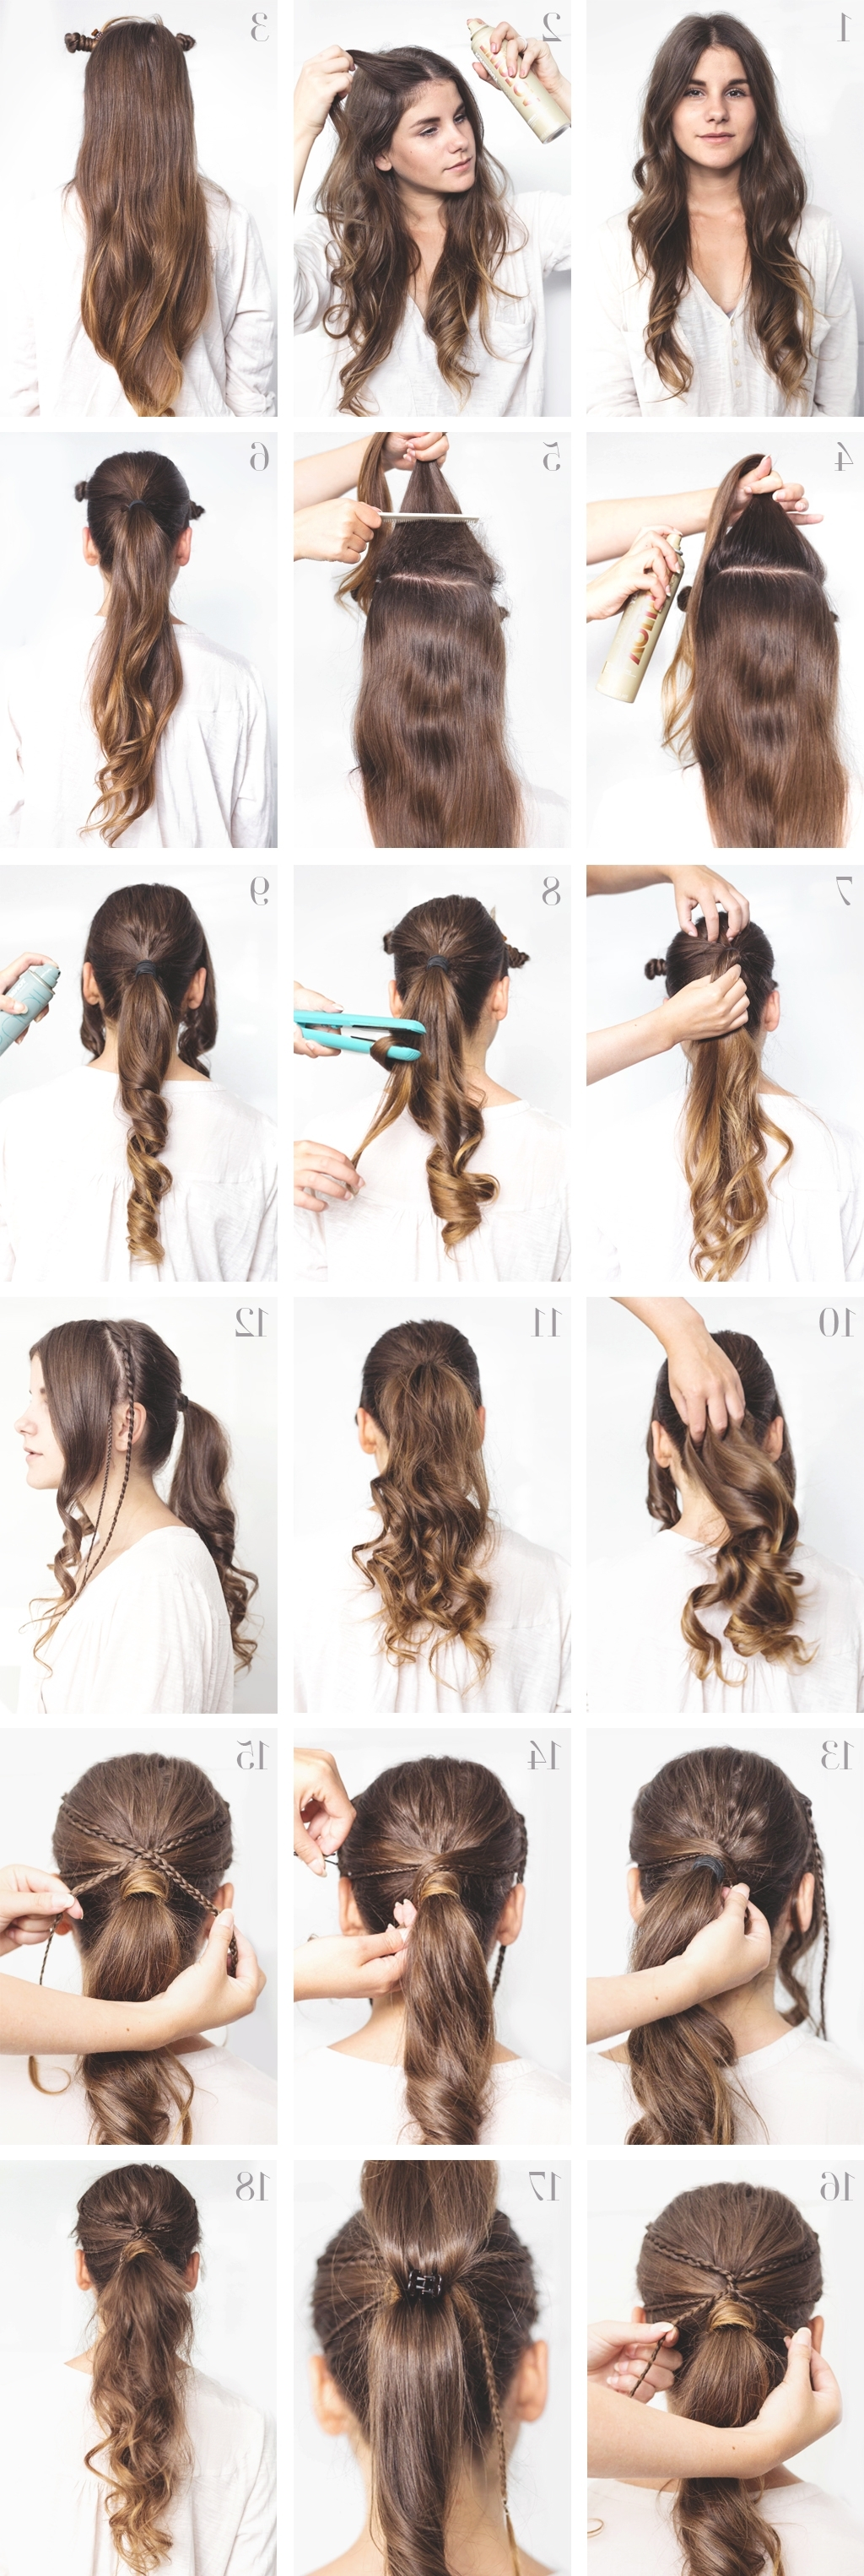 Tutorial: Voluminous Ponytail For Everyday › Thefashionfraction For Widely Used High Voluminous Ponytail Hairstyles (View 17 of 20)